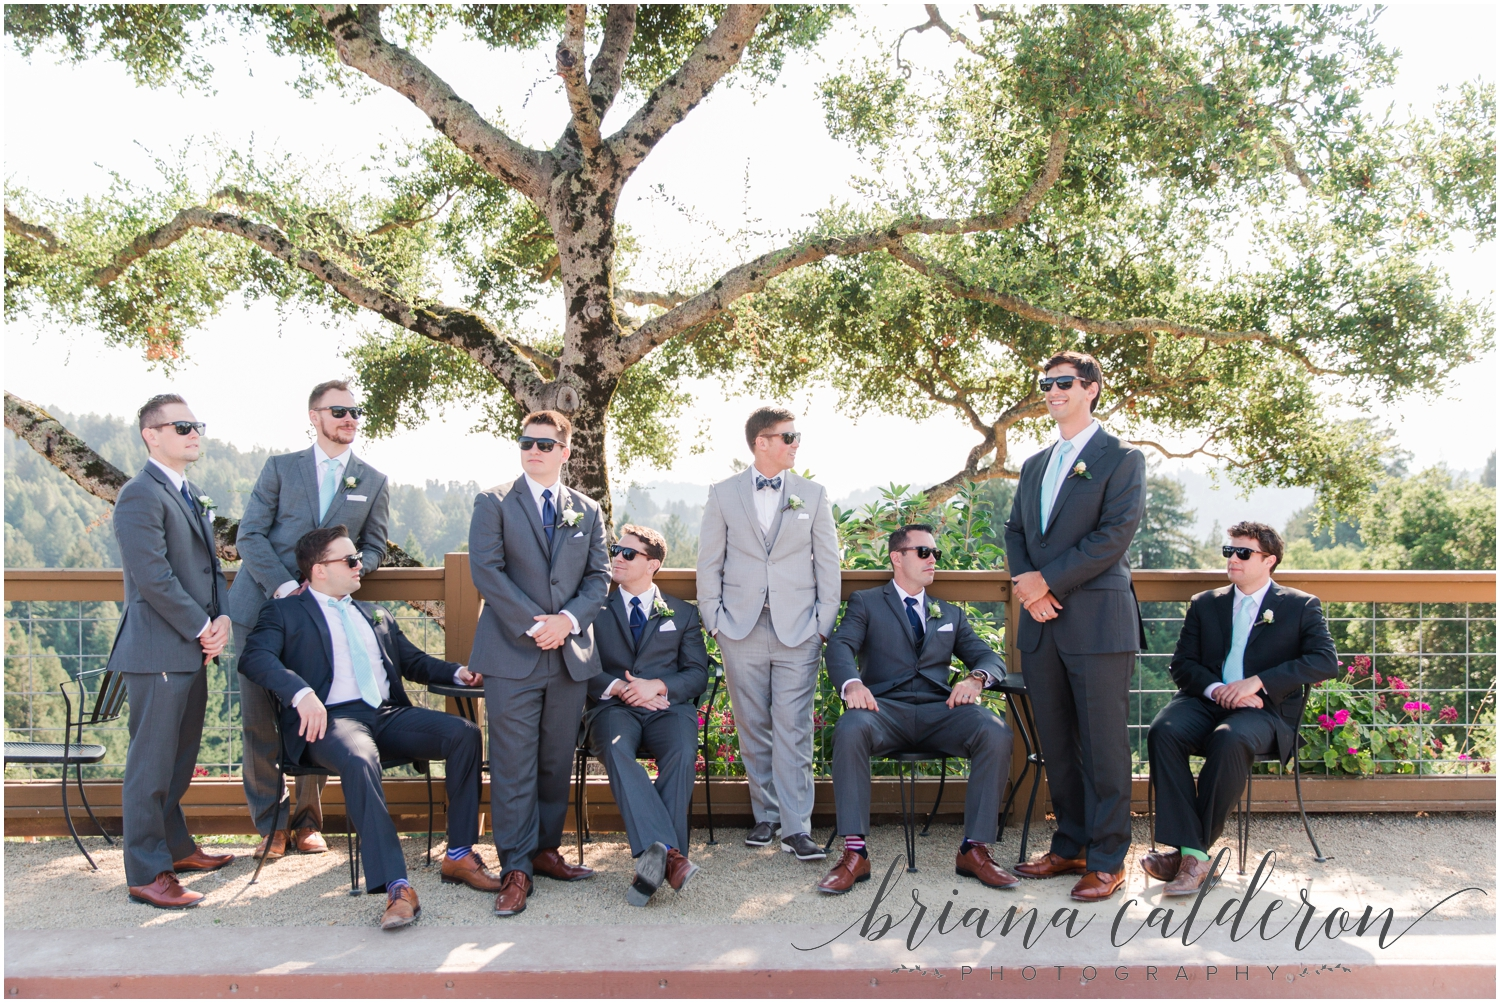 Regale Winery Wedding photos by Briana Calderon Photography_0663.jpg